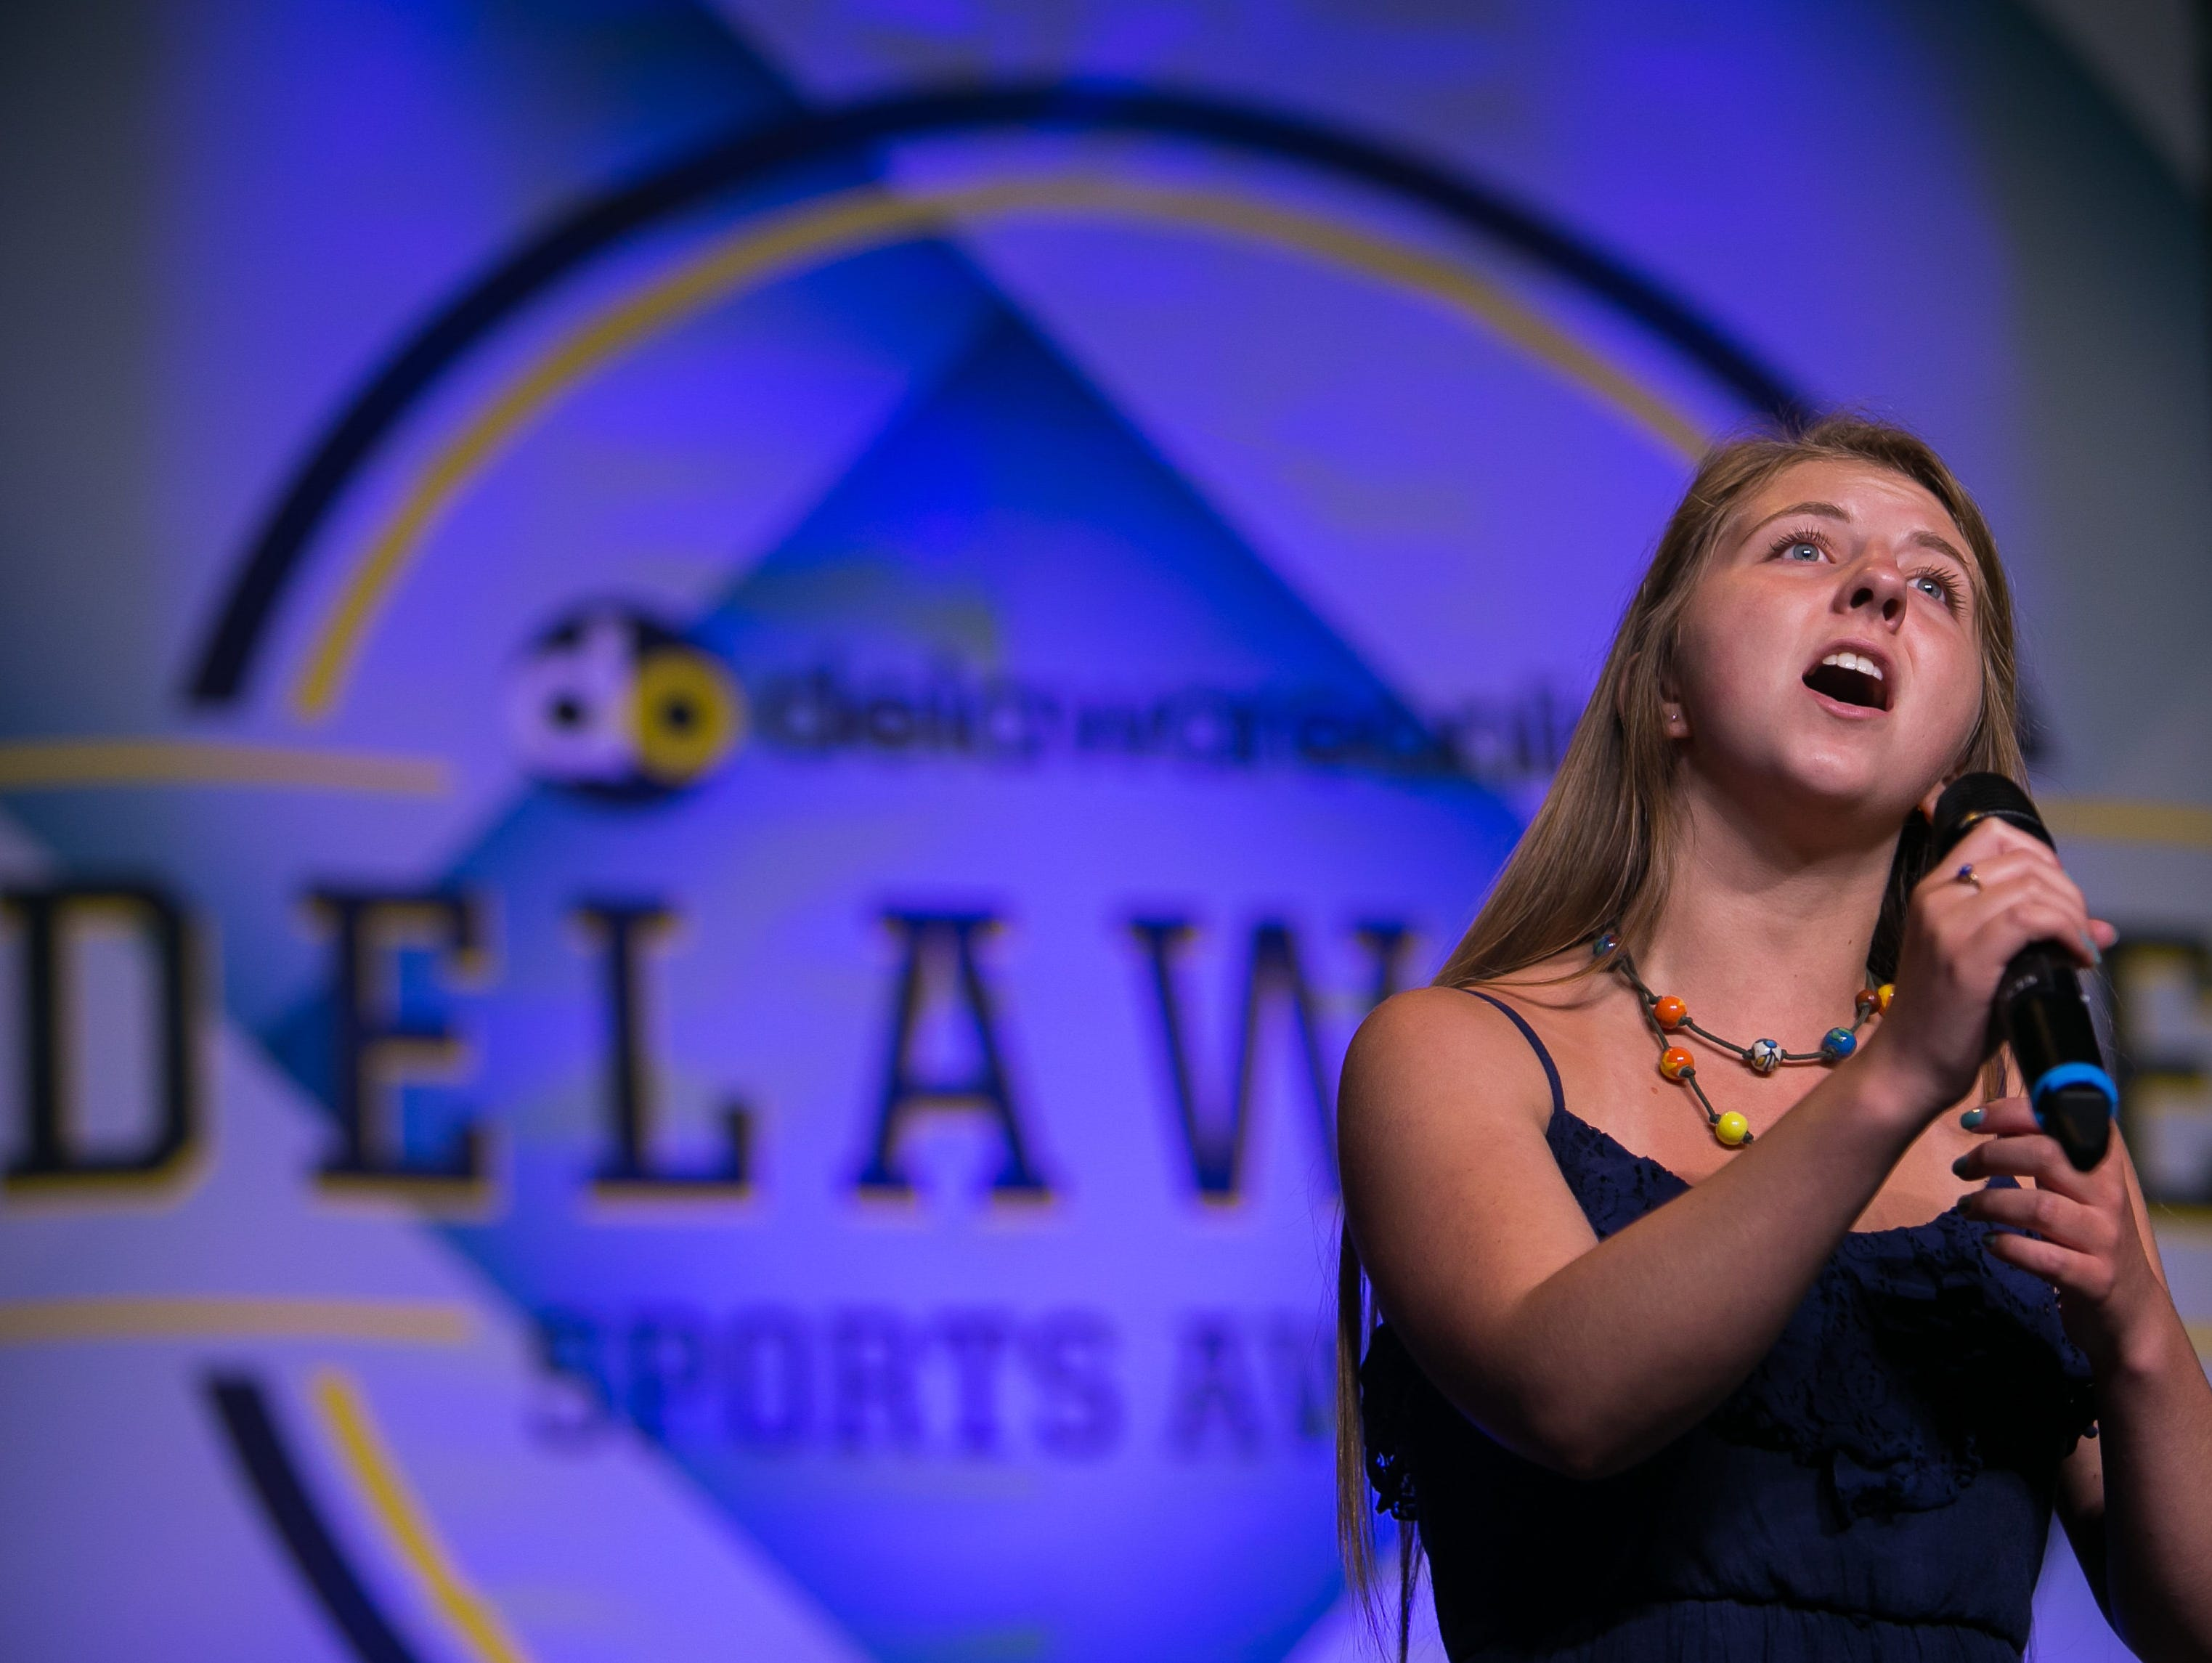 Hannah Scarborough sings the National Anthem at the Delaware Sports Awards.